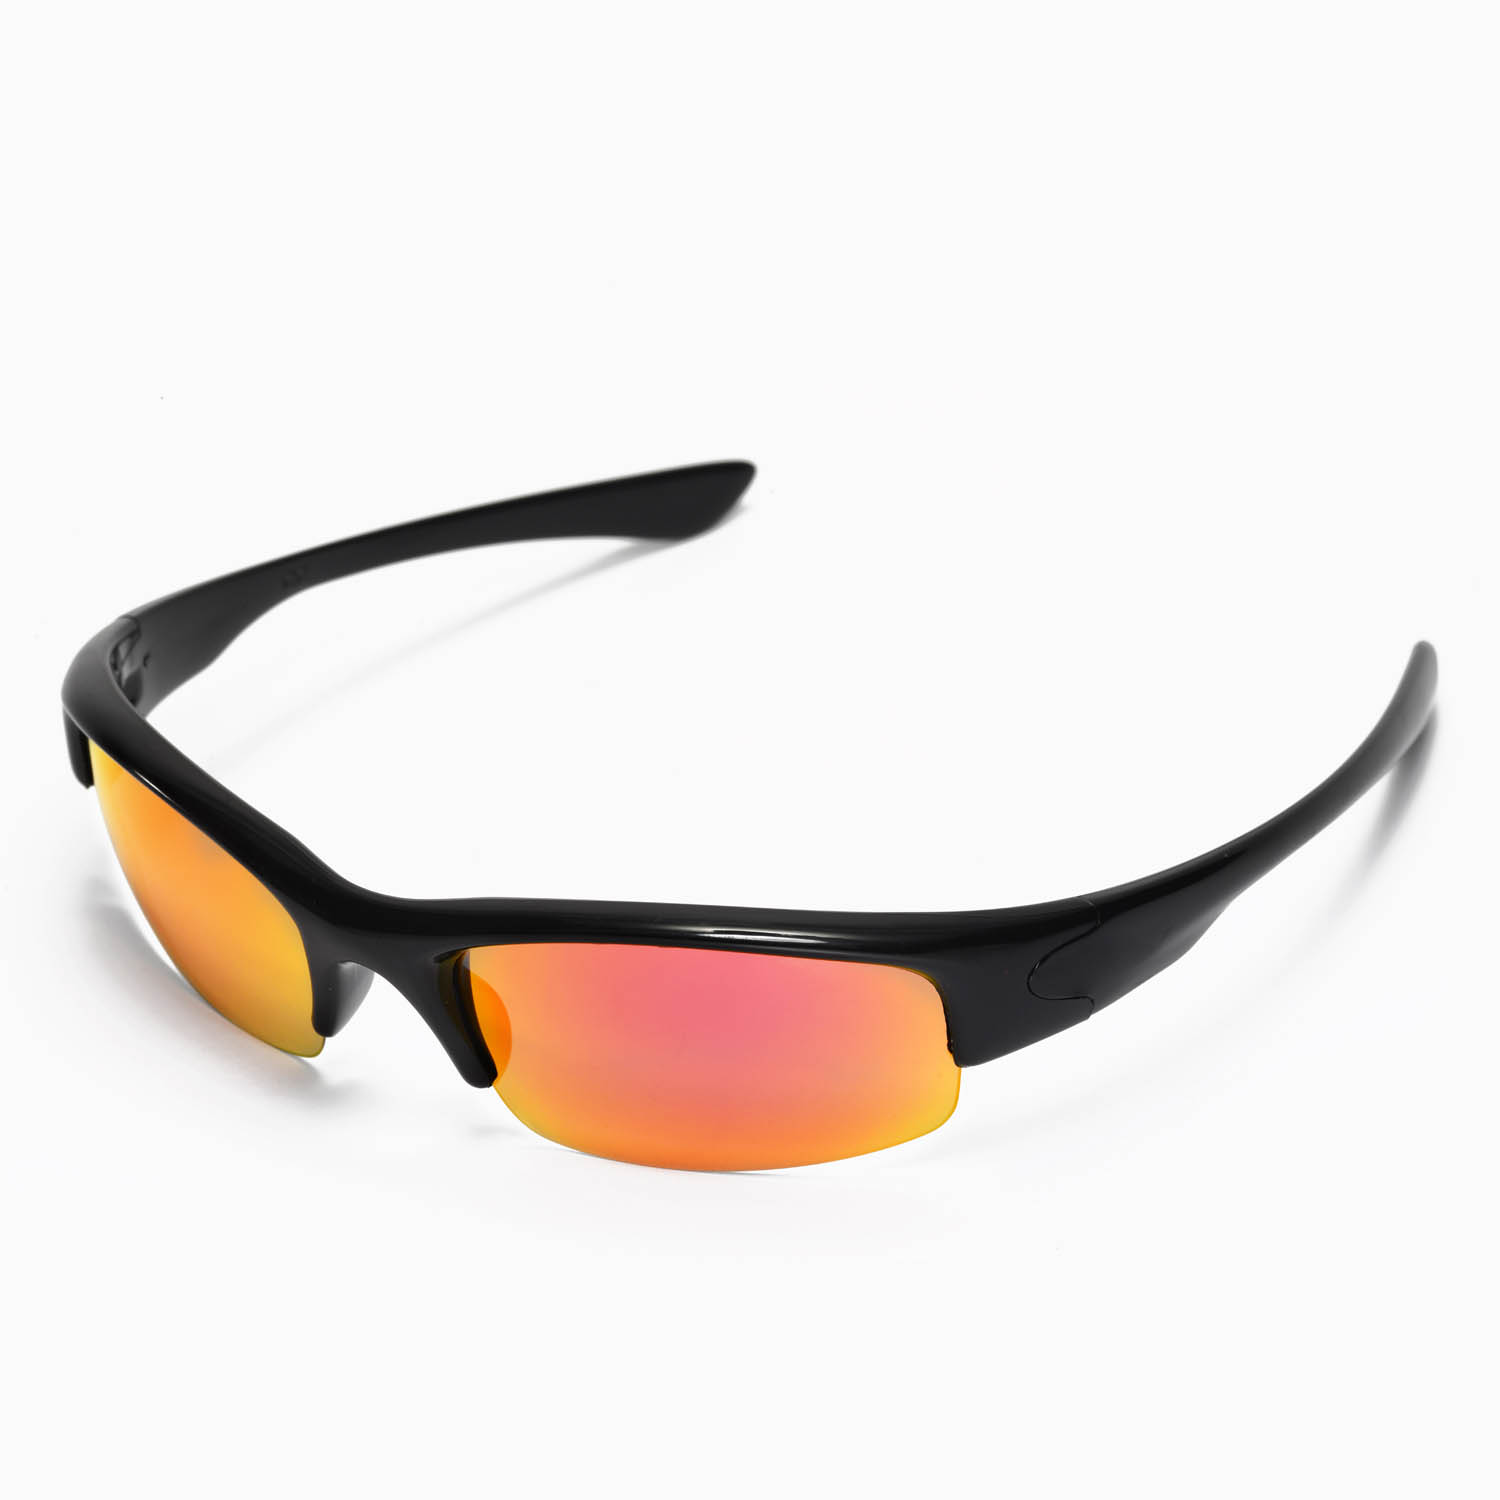 3640b4d69d Details about New WL Polarized Fire Red Replacement Lenses For Oakley  Bottlecap Sunglasses